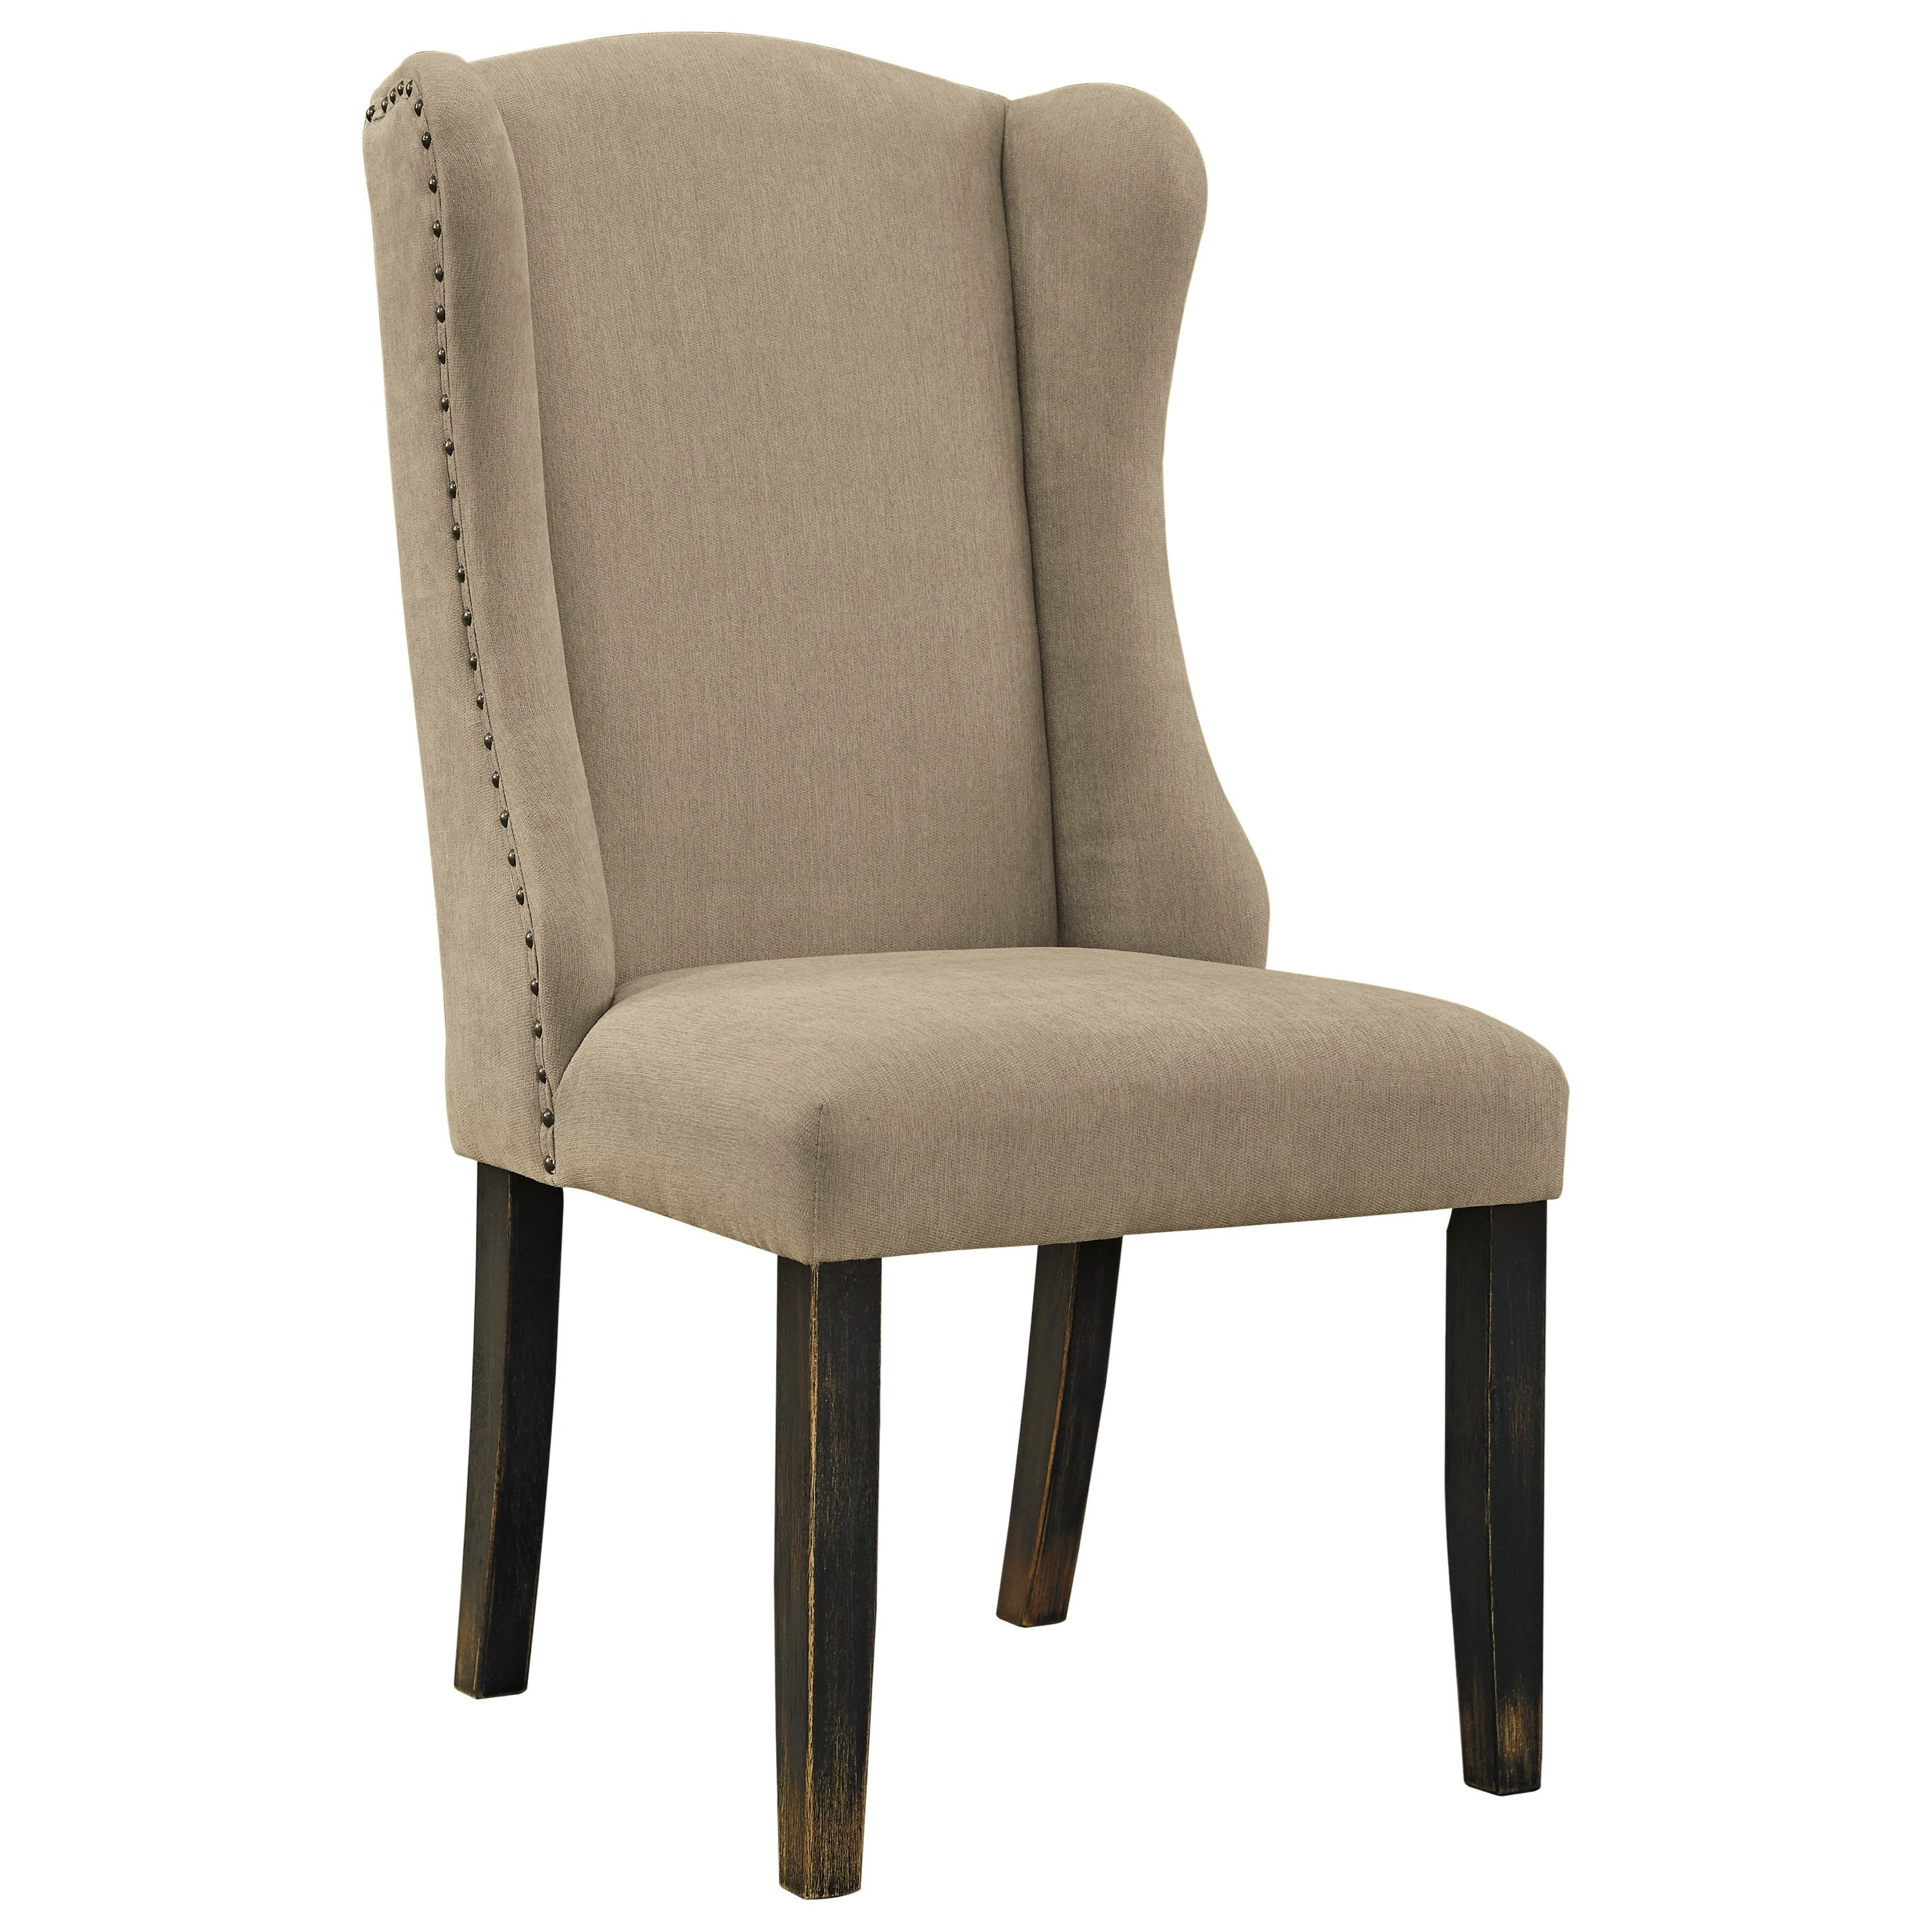 Signature Design by Ashley Gerlane Dining Upholstered Side Chair - Item Number: D657-02